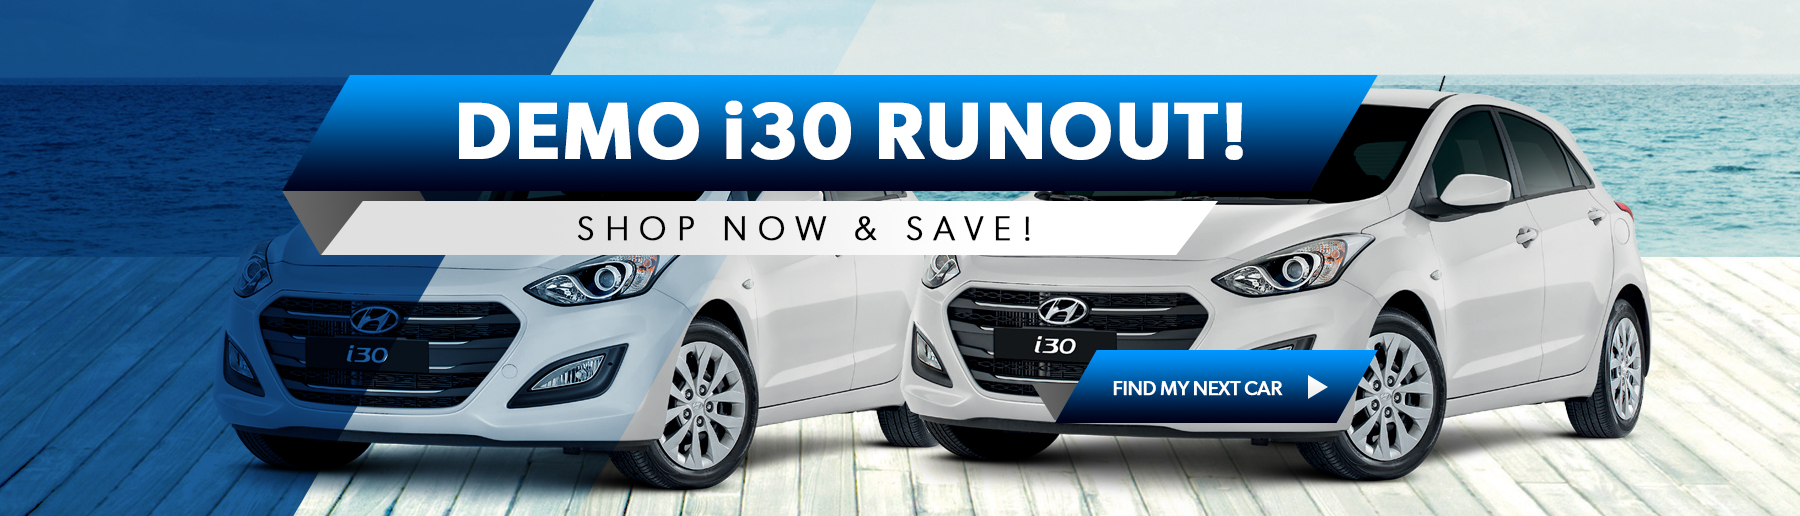 Search i30 demo runout models